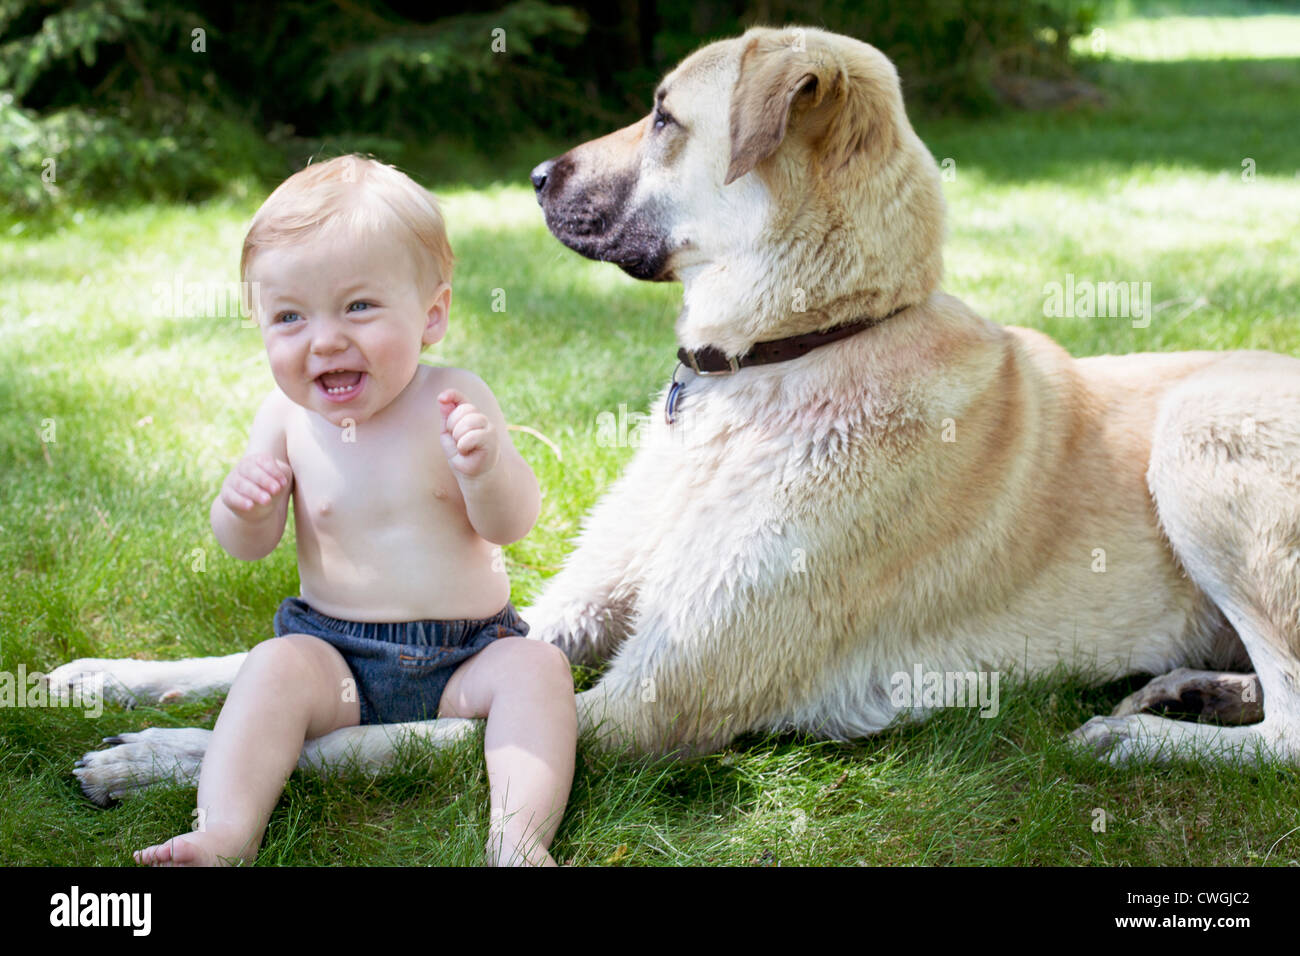 Baby boy sitting near his white dog outdoors in green grass. - Stock Image